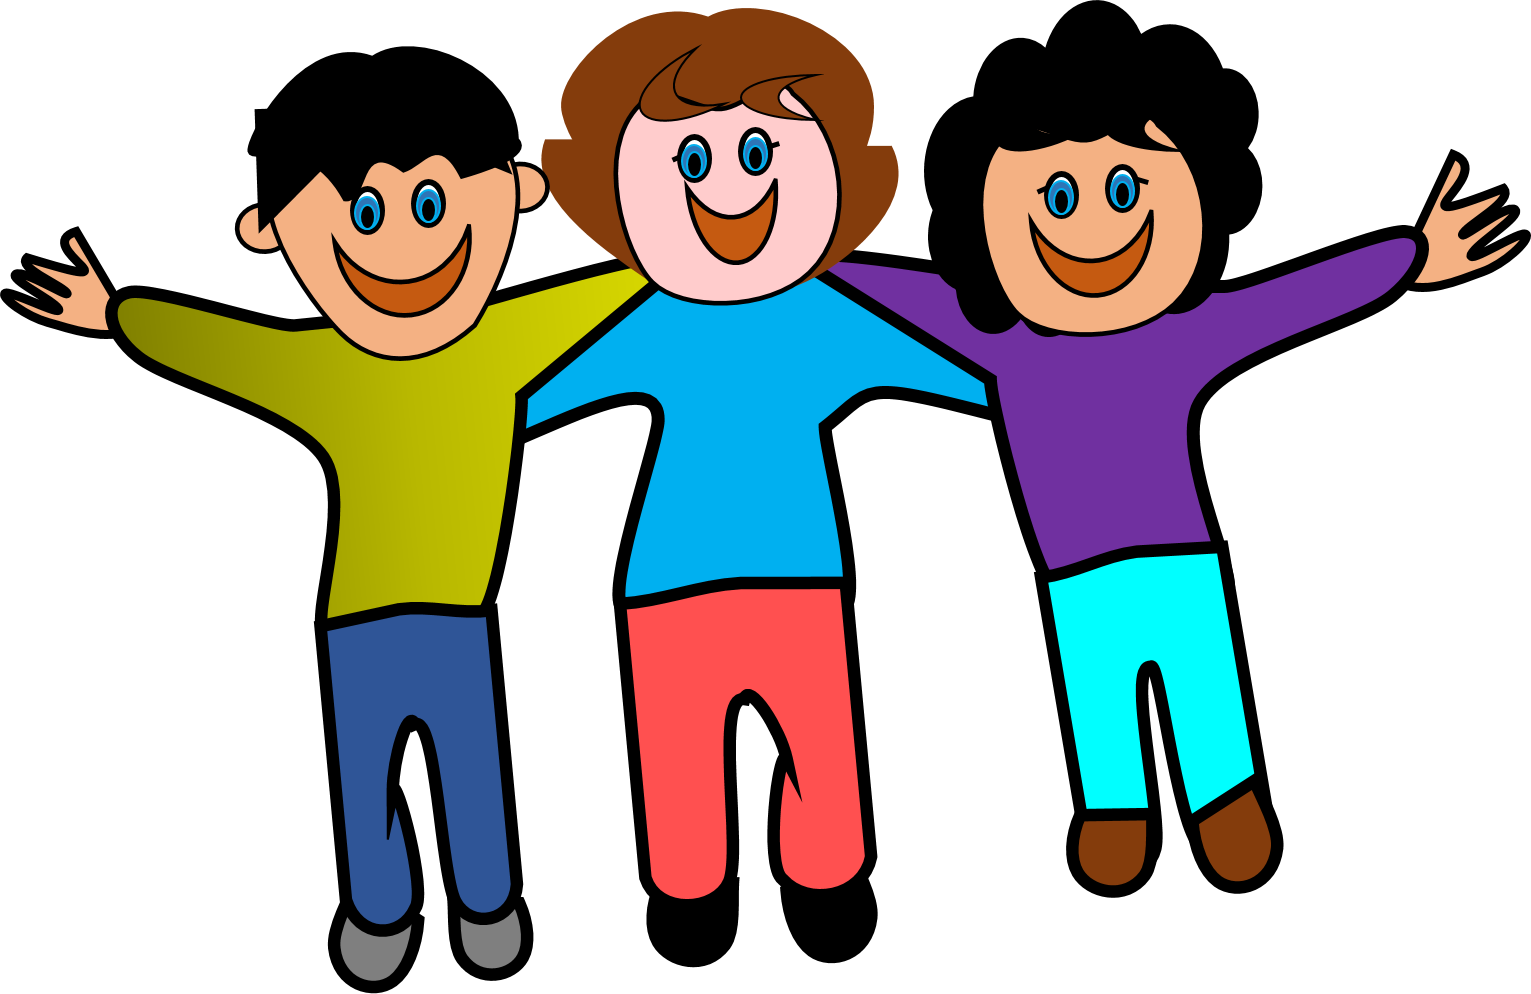 Free Friends Together Cliparts, Download Free Clip Art, Free.